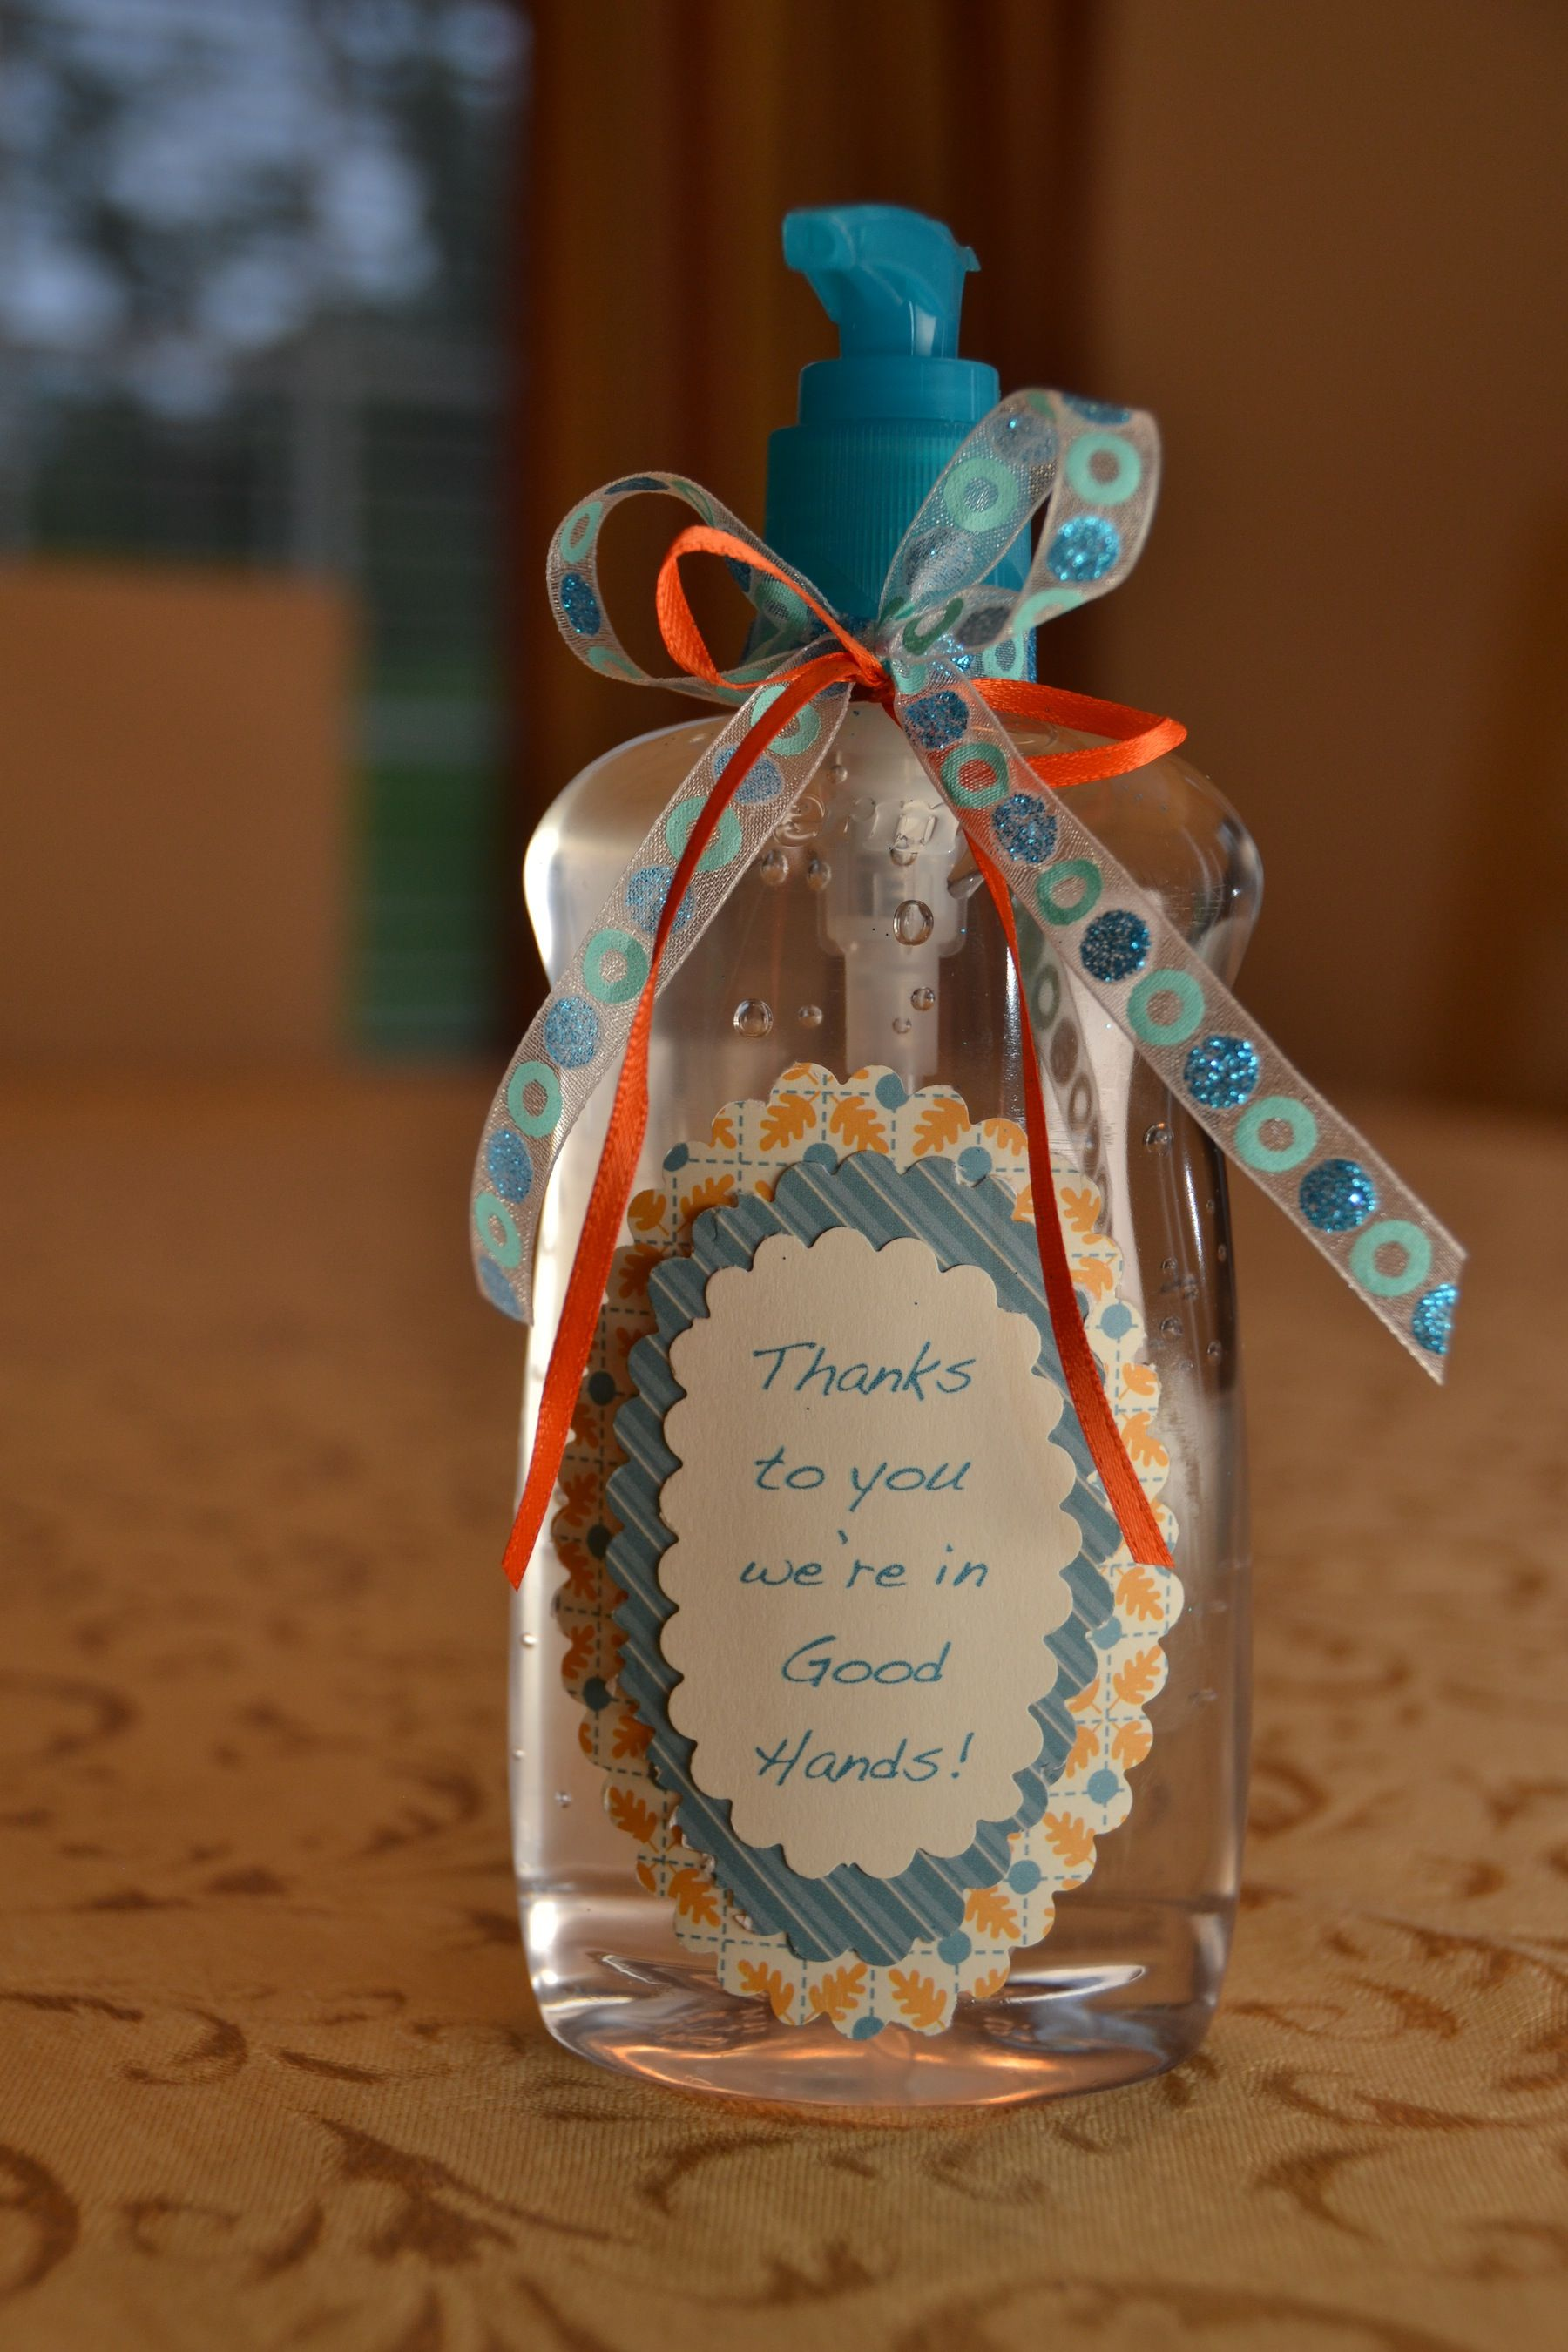 Teacher Hand Sanitizer Gift Back To School Gifts For Teachers